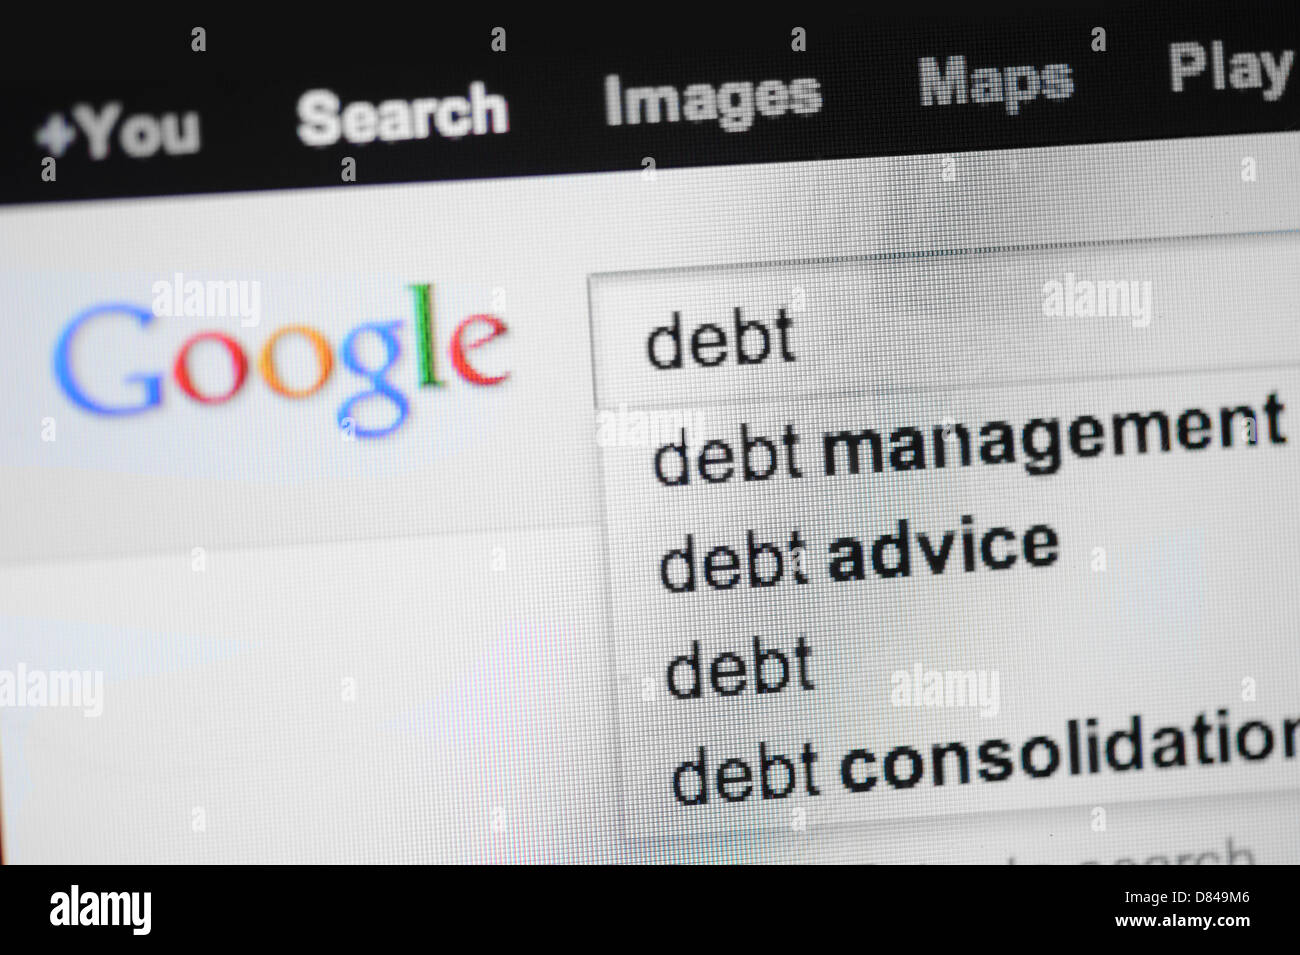 Debt search on Google. - Stock Image